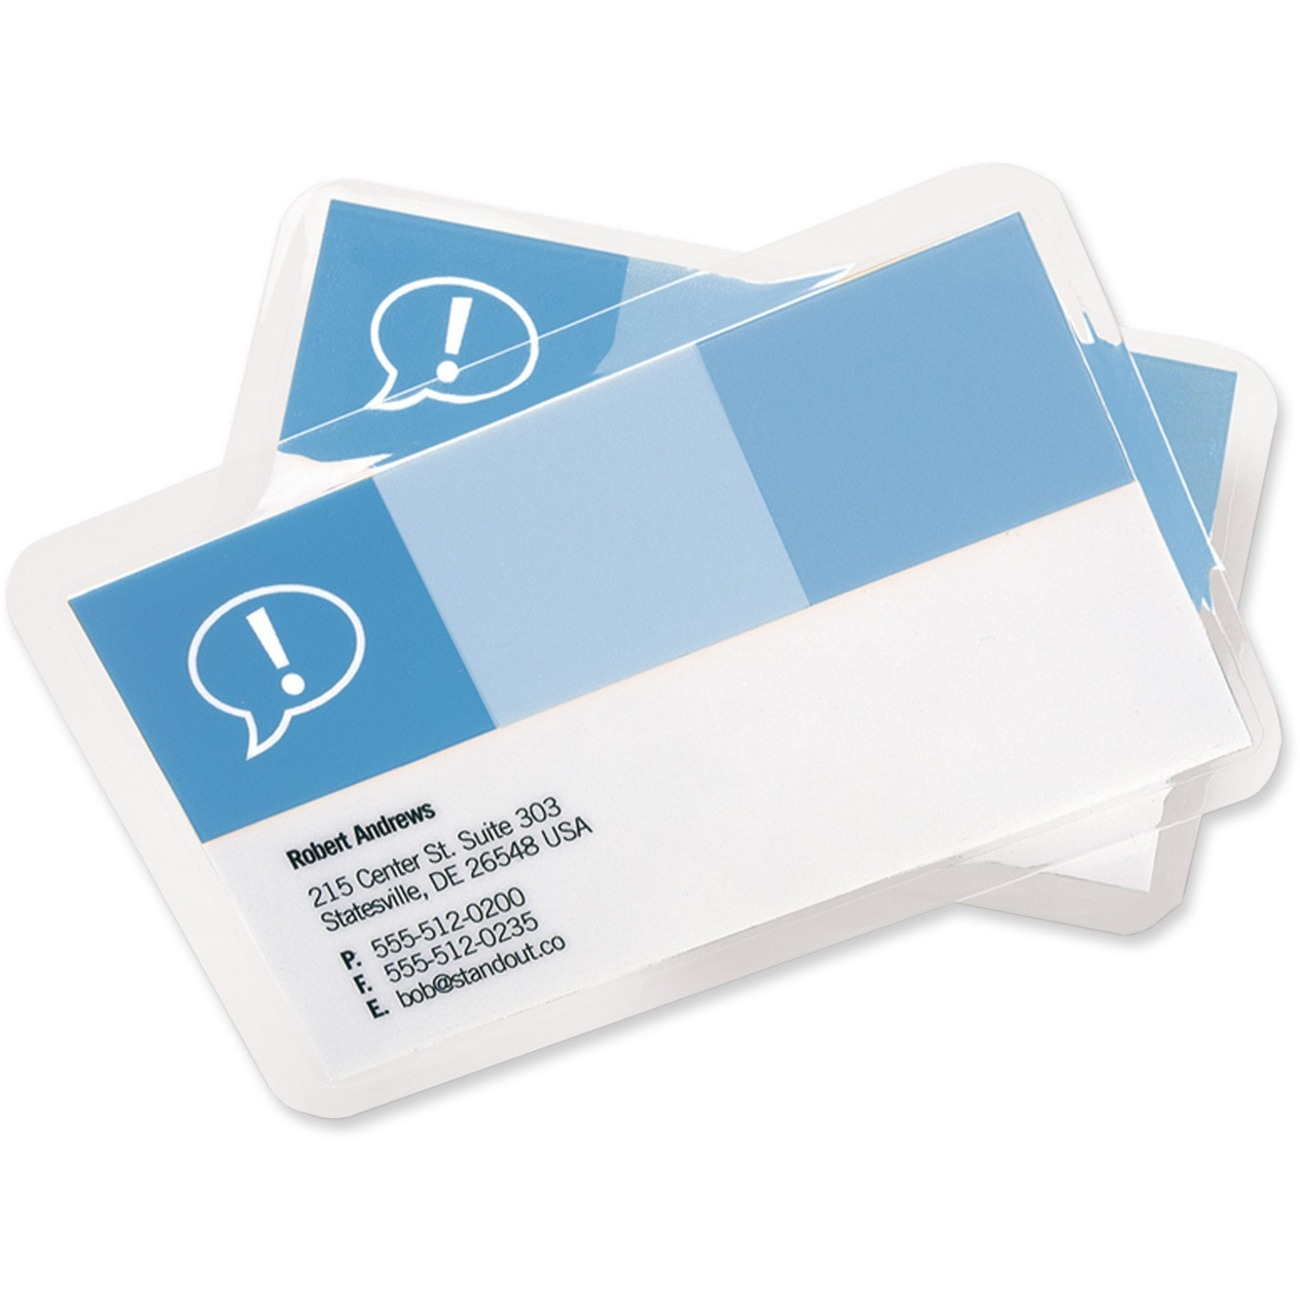 Ocean Stationery and Office Supplies :: Technology :: Office ...